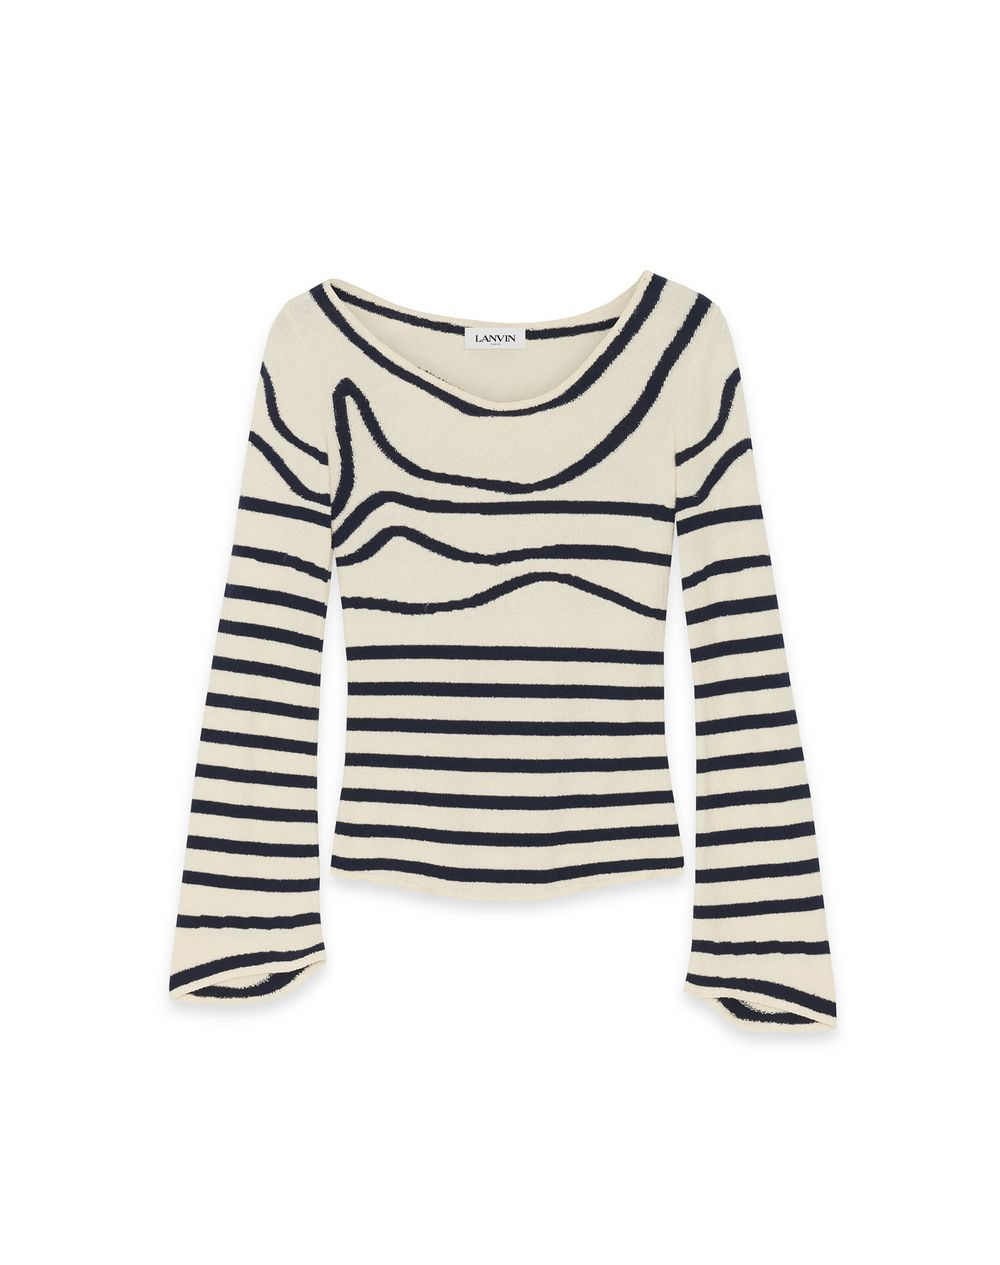 LARGE NECK STRIPED SWEATER - Lanvin